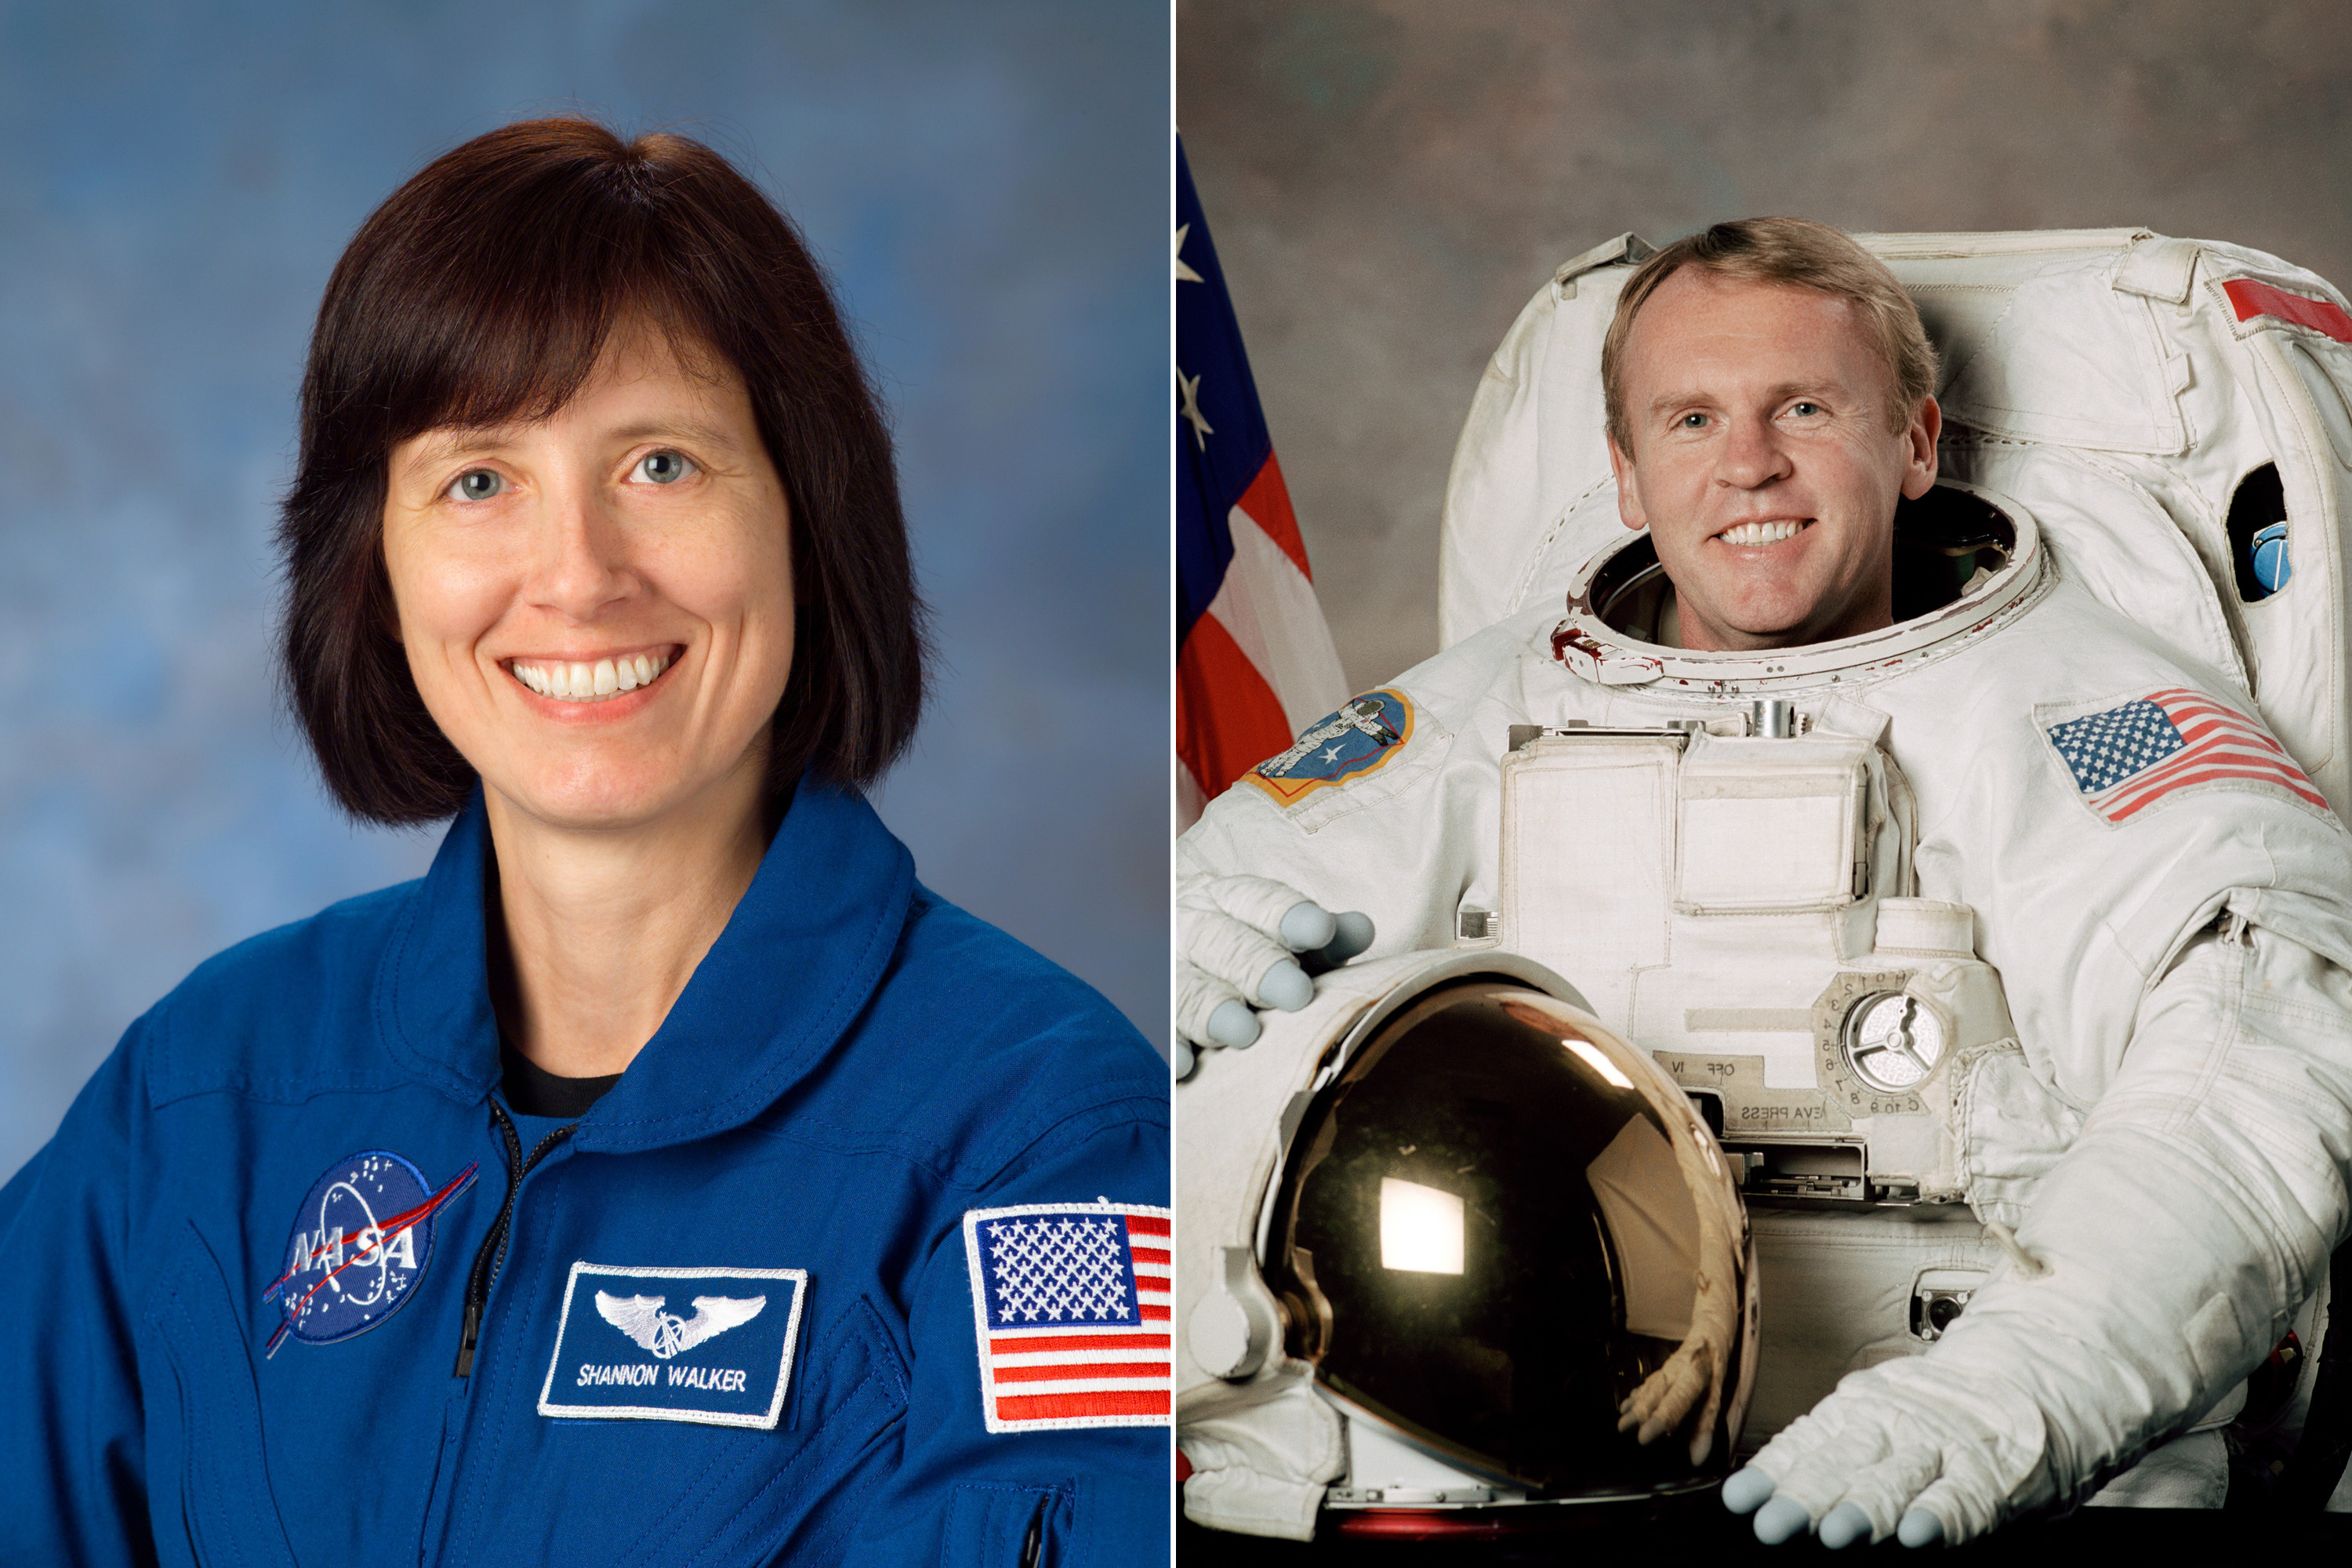 Shannon Walker and Andy Thomas were married in 2005.  Thomas is a veteran of four space flights including 2005's STS-114 mission.  Walker launched and served as flight engineer of Russia's Soyuz spacecraft, TMA-19, in 2010 for a                               long duration mission aboard the ISS.